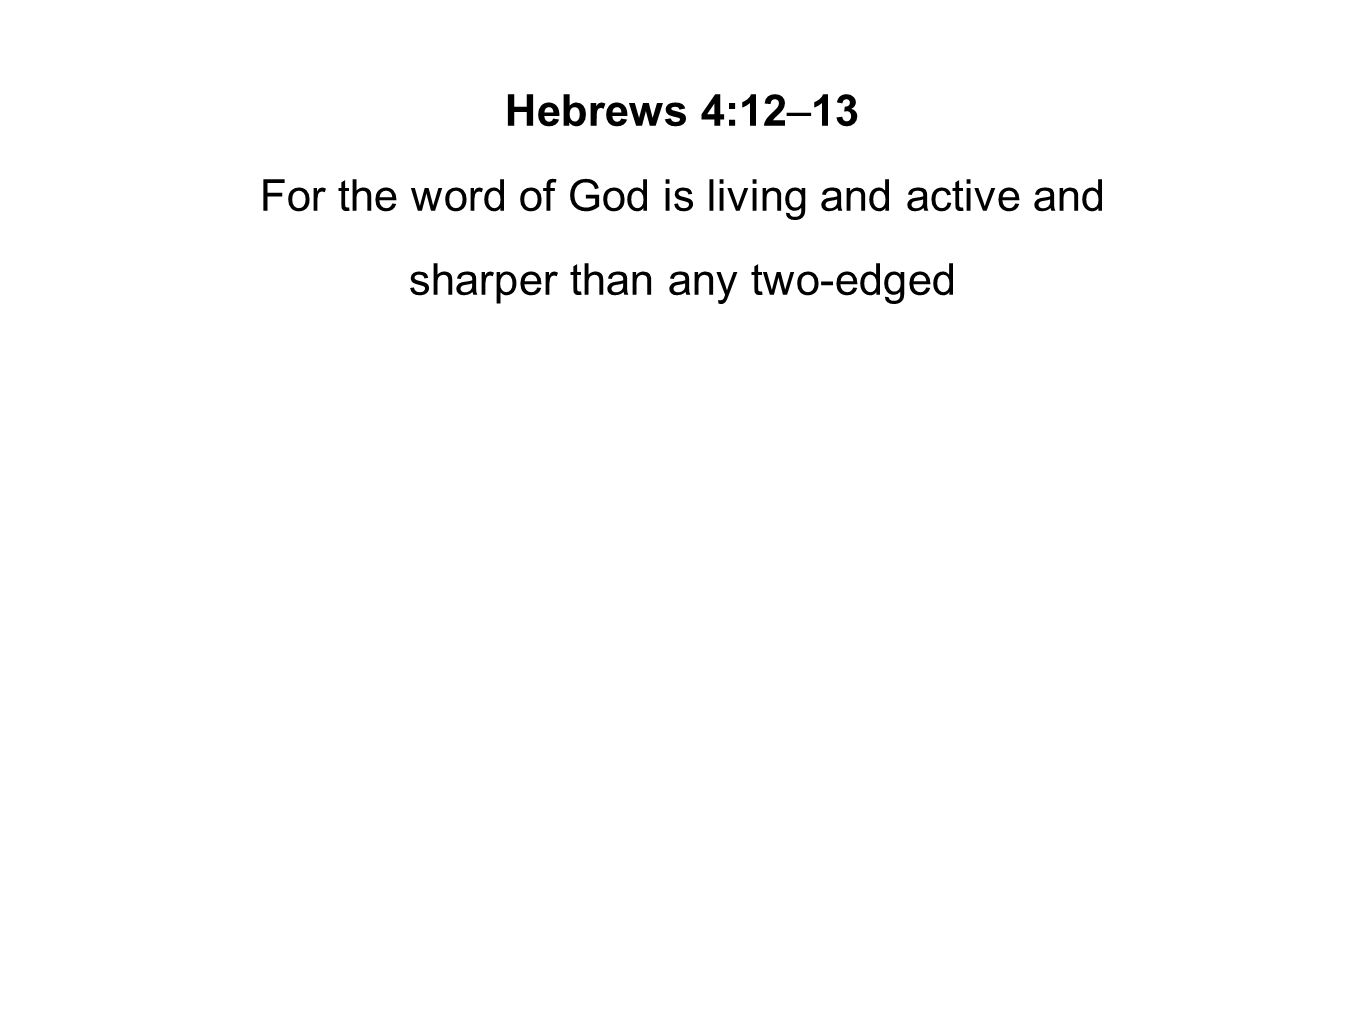 Hebrews 4:12–13 For the word of God is living and active and sharper than any two-edged